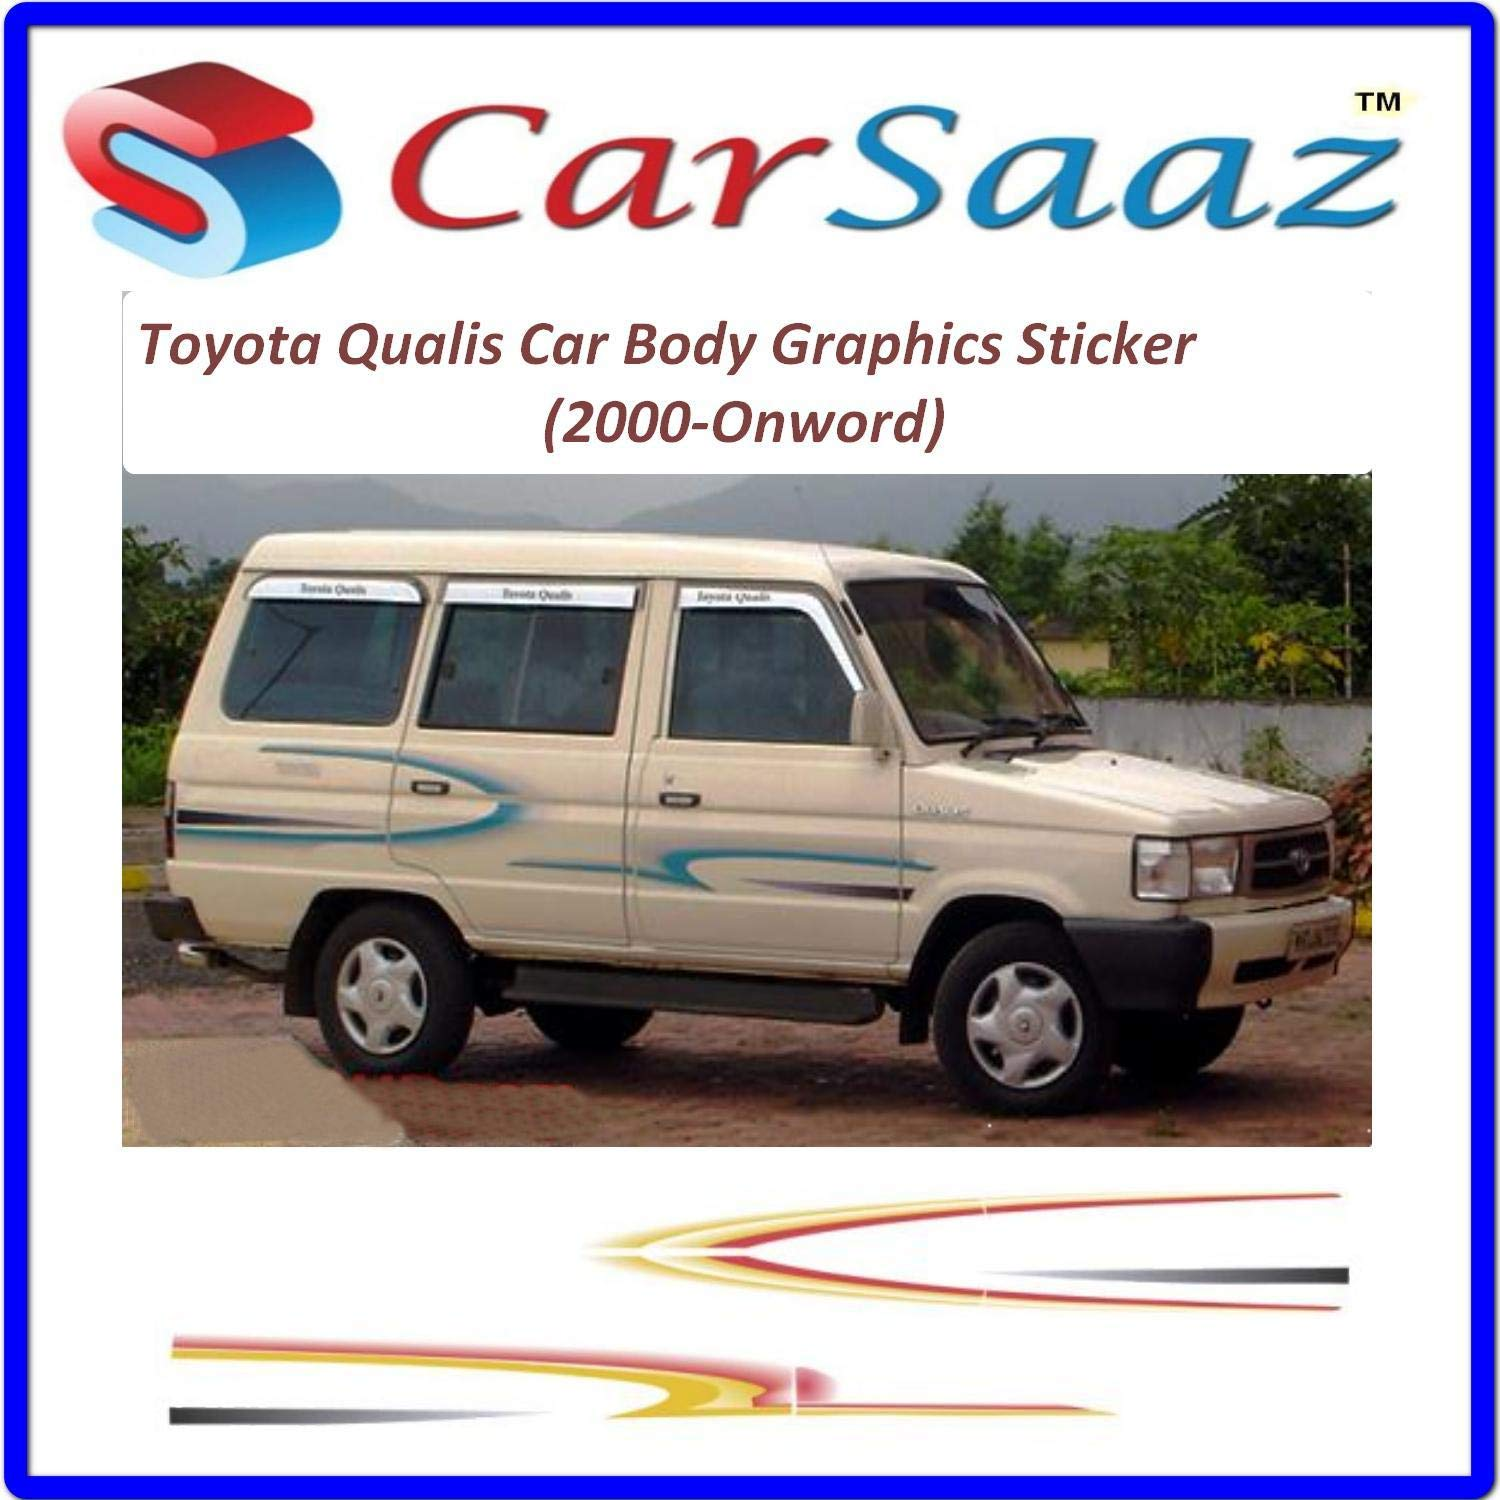 Carsaaz Car Body Graphics Stickers Compatible With Toyota Qualis